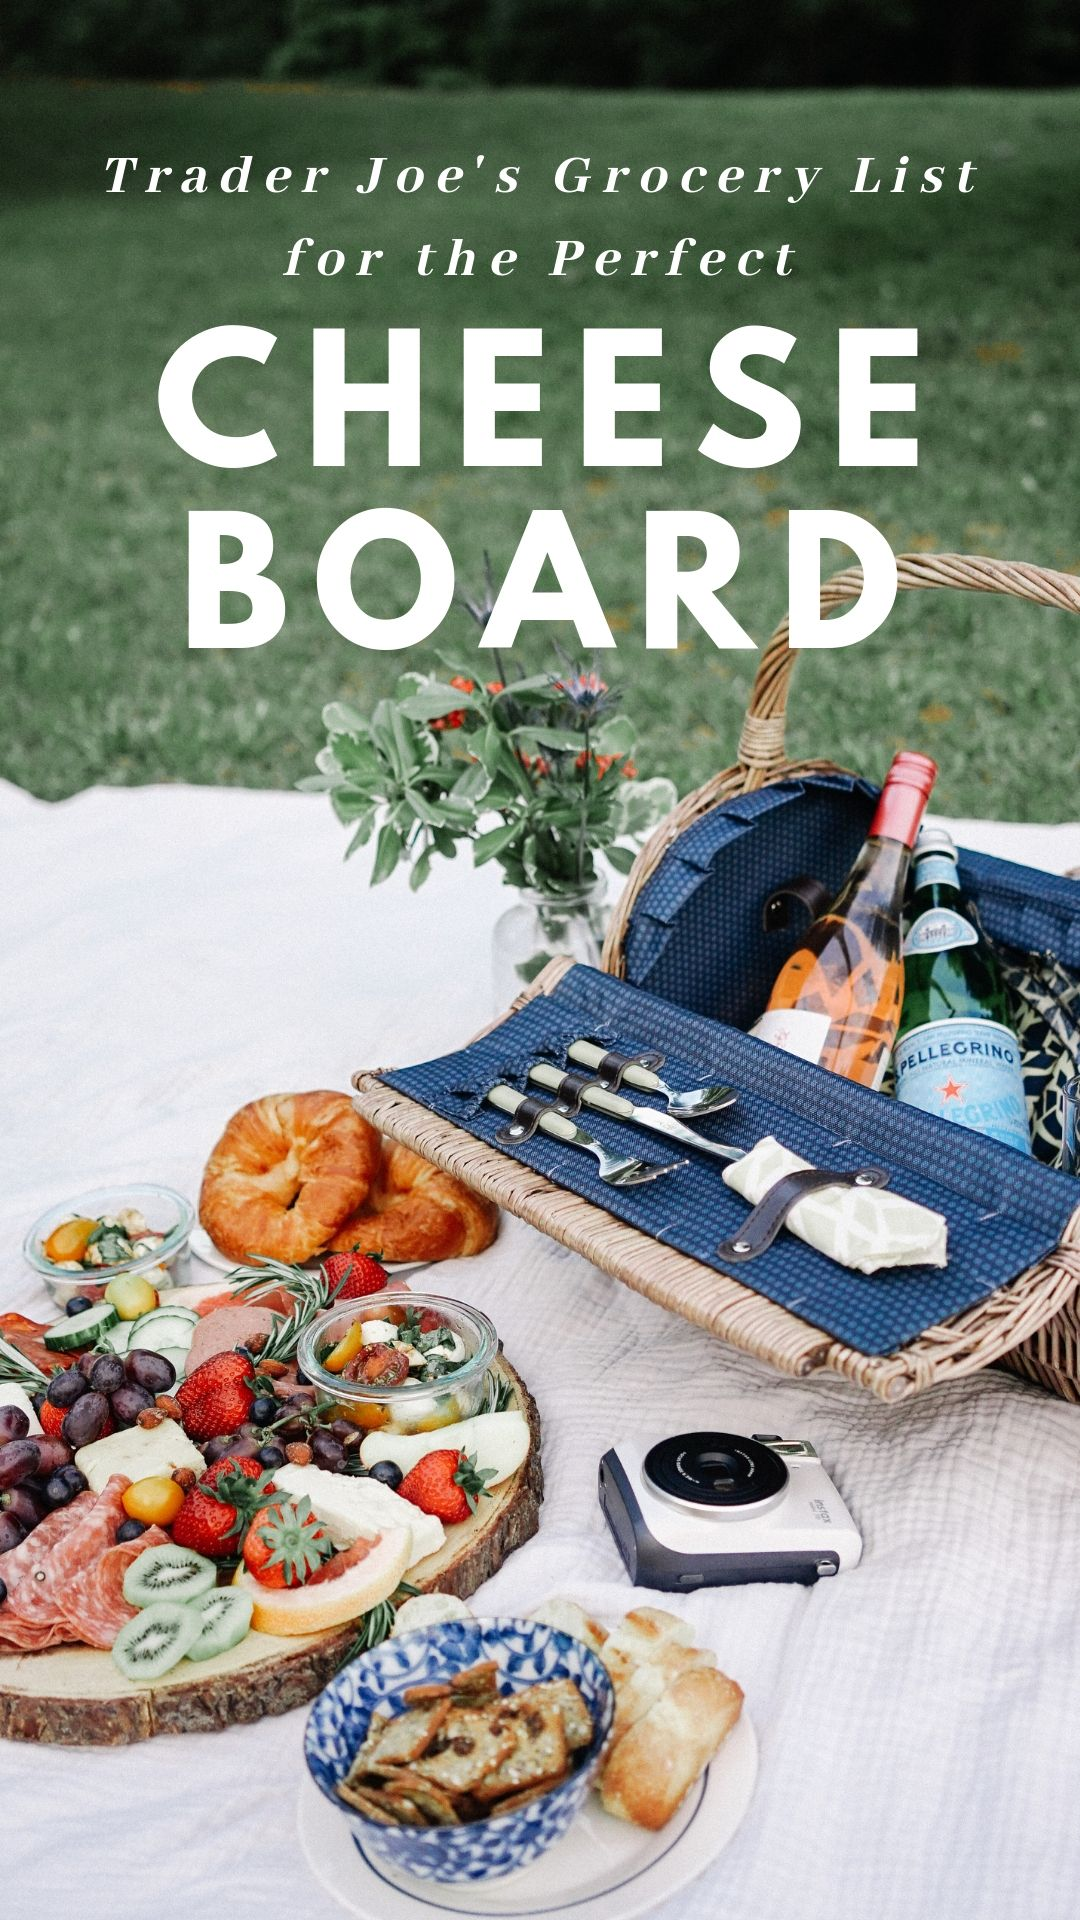 Grocery List for Cheese Board Trader Joes